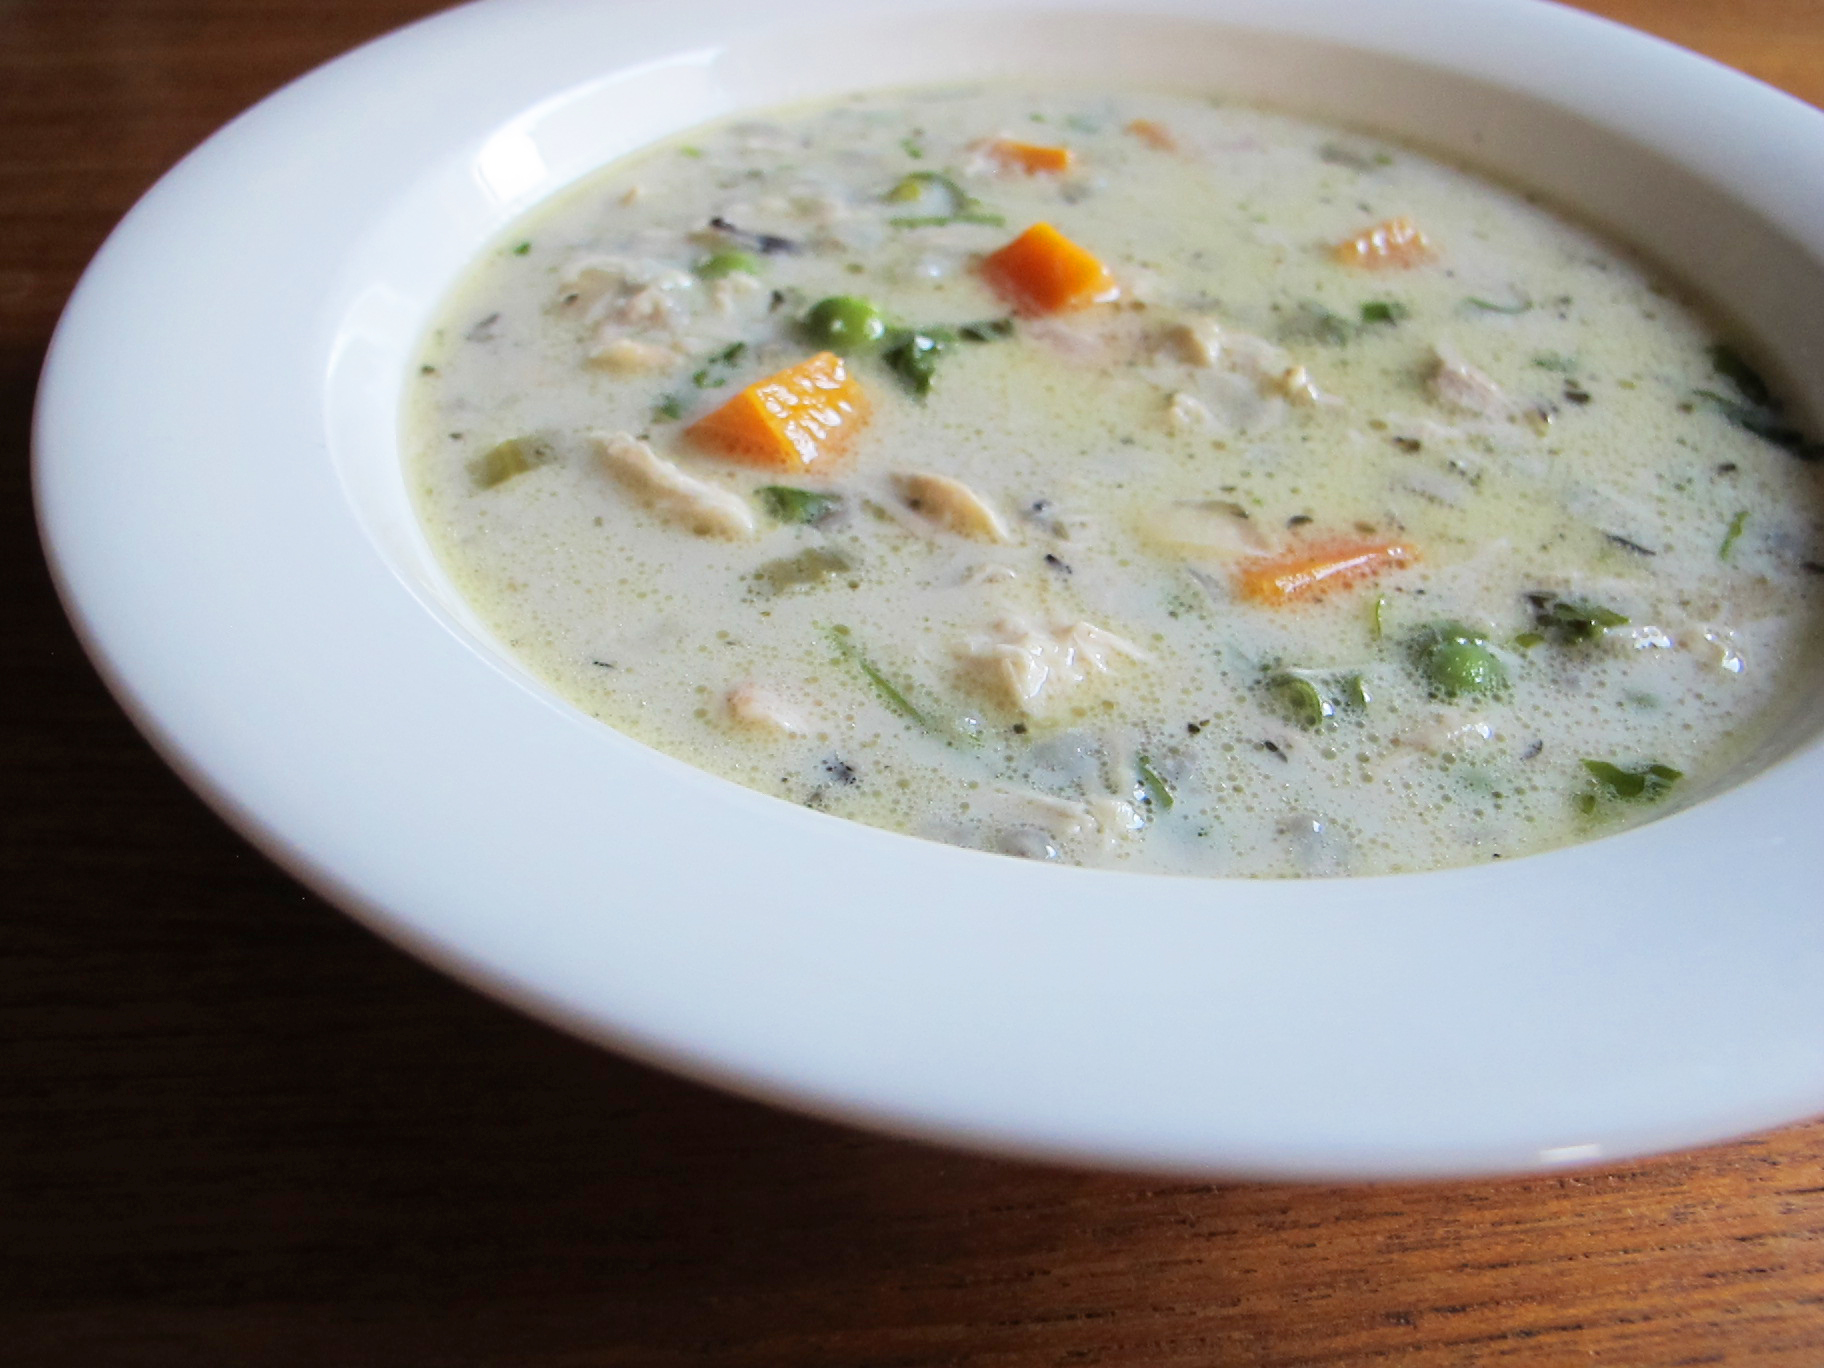 Slow cooker creamy chicken and wild rice soup | semiswede